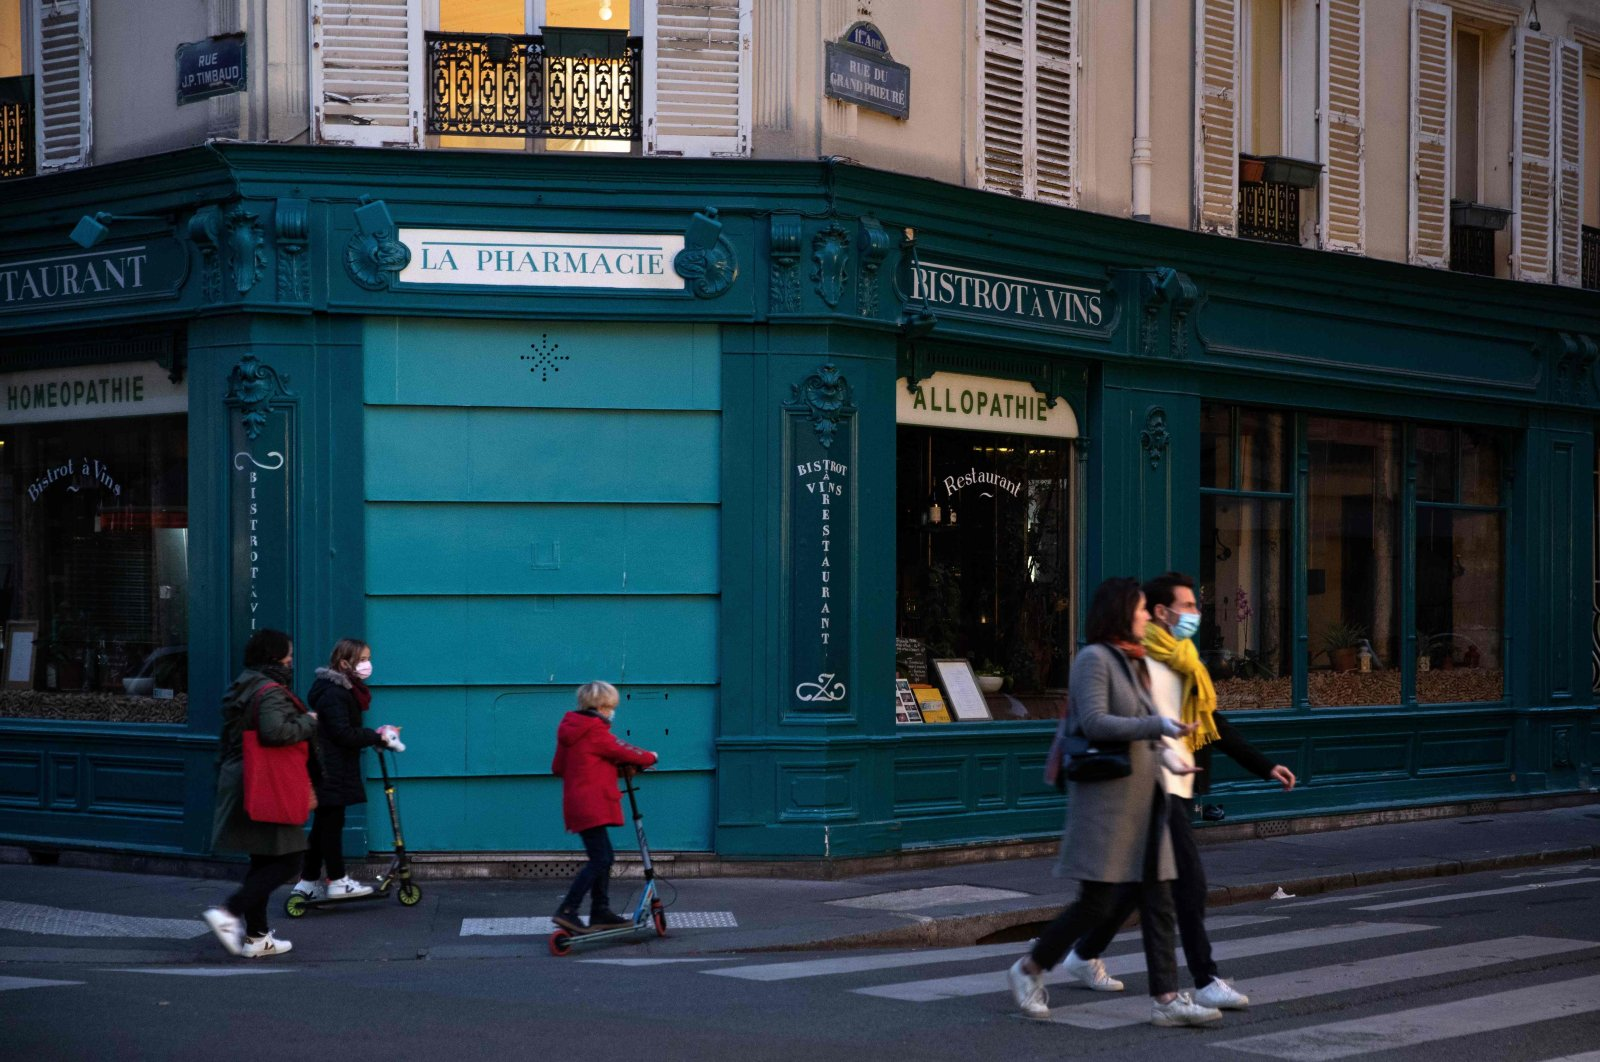 People wearing protective masks walk past closed a restaurant and pharmacy, Paris, Nov. 4, 2020. (AFP Photo)